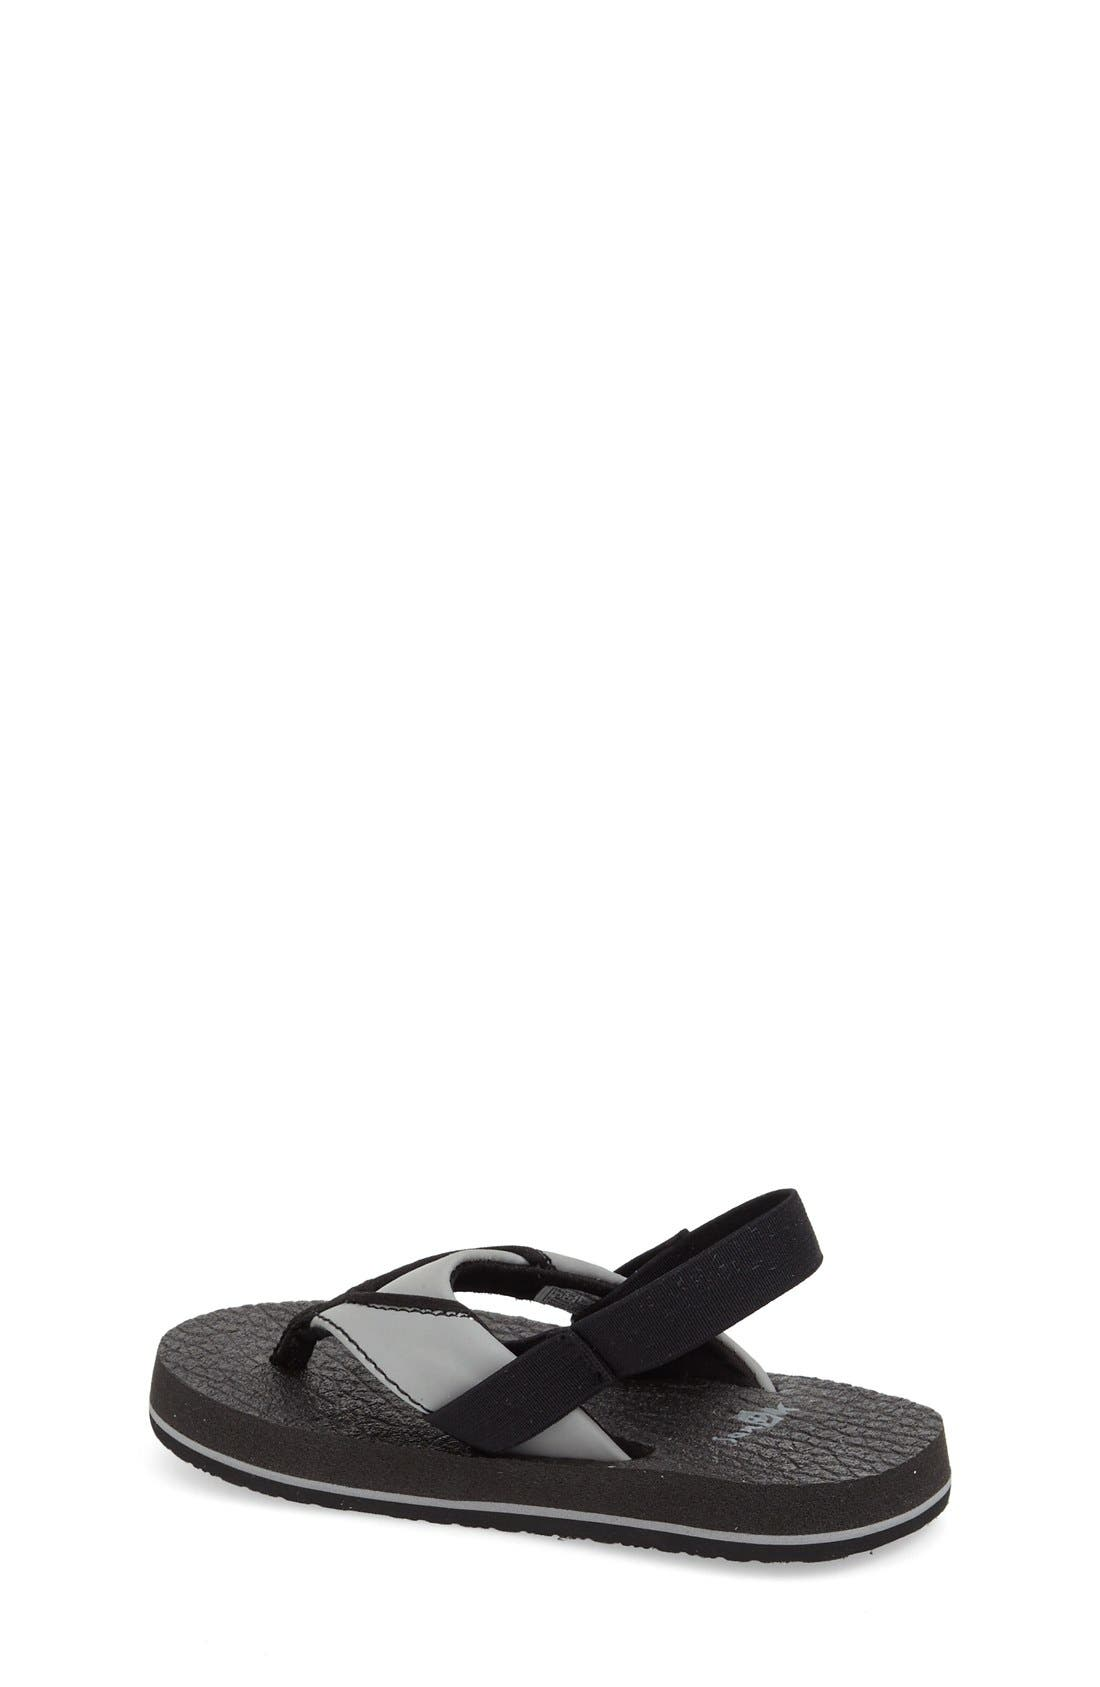 Alternate Image 2  - Sanuk 'Root Beer' Sandal (Toddler, Little Kid & Big Kid)